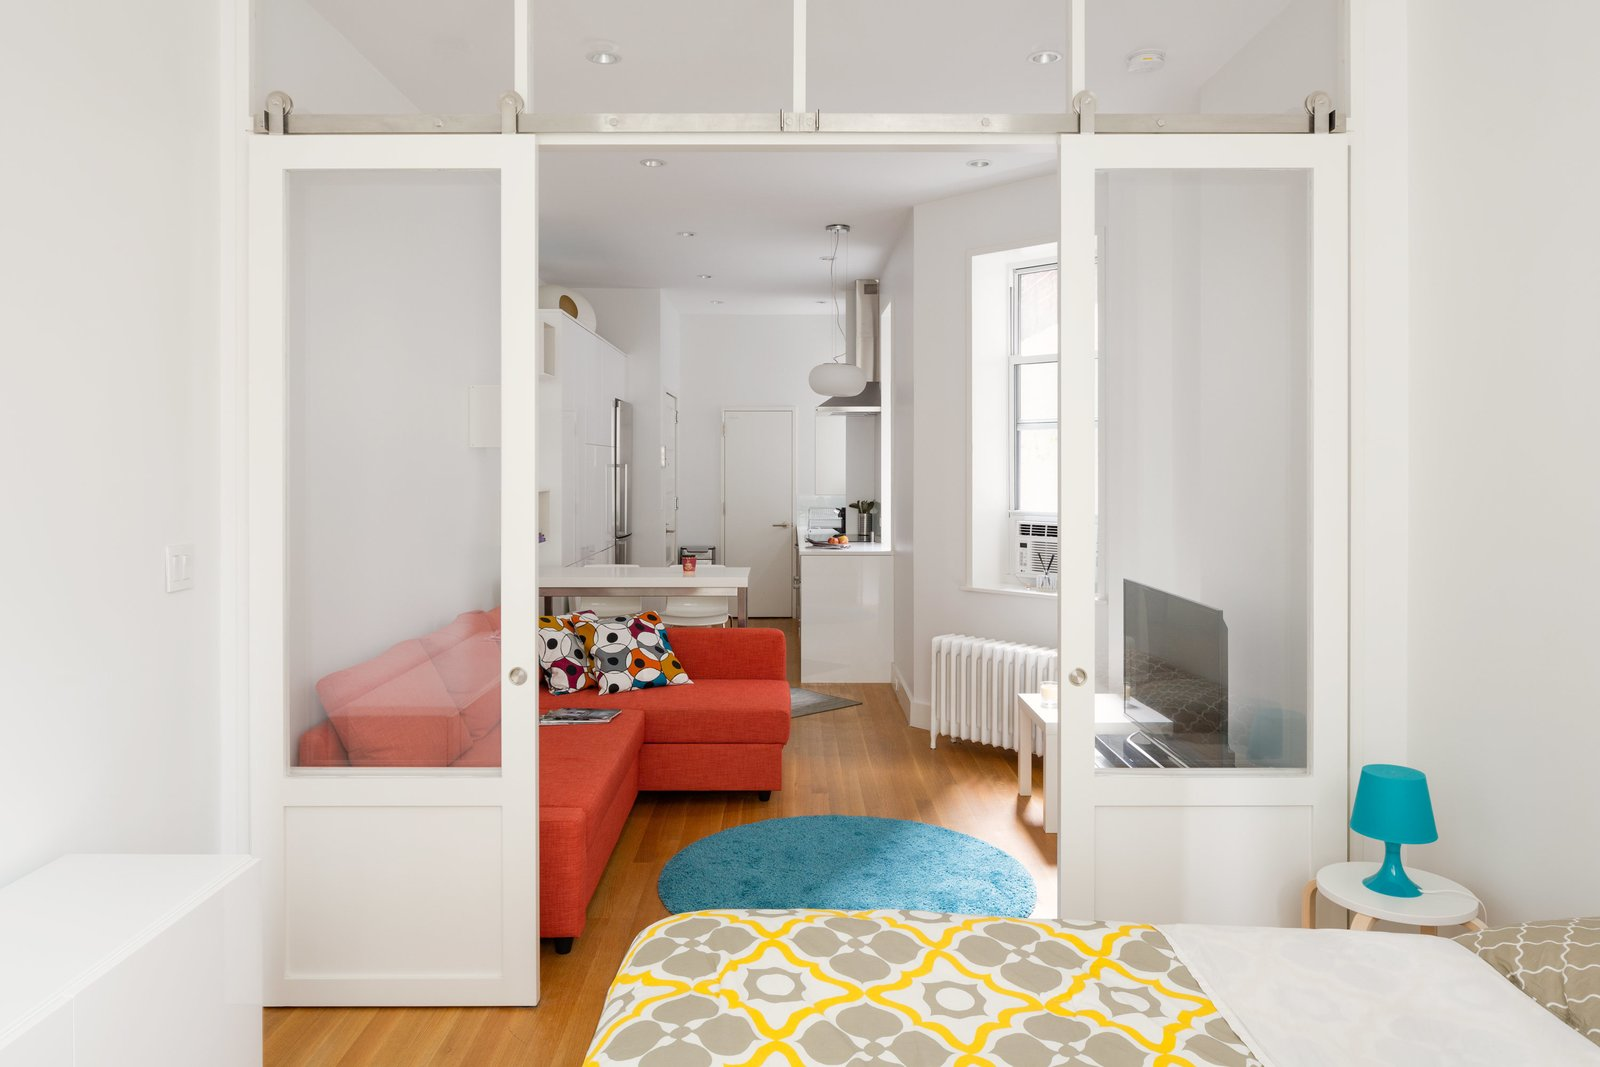 Photo 1 of 10 in This 390-Square-Foot Renovation Is Compact Yet Comfortable in Greenwich Village